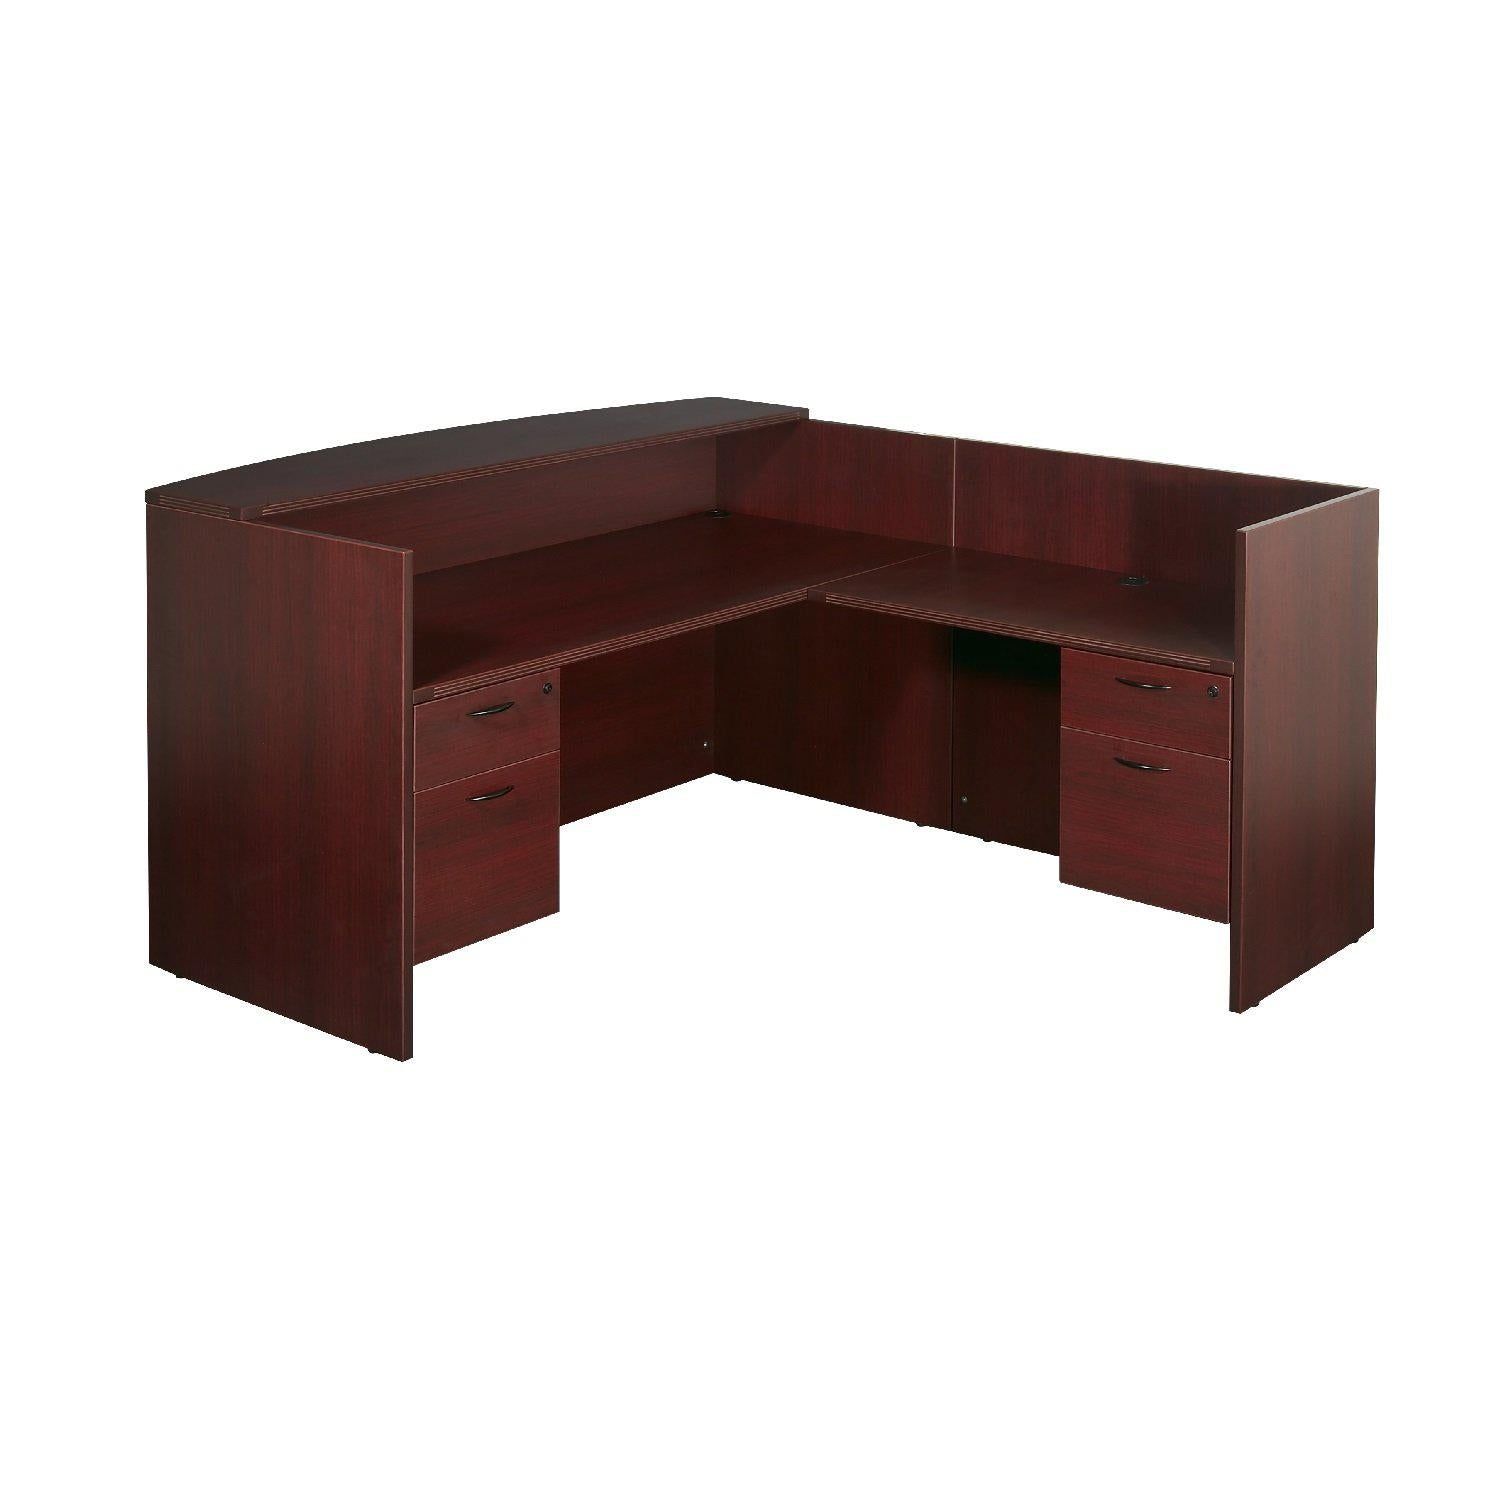 "Napa L Shape Reception Station, 77"" x 77"" x 42"" H"